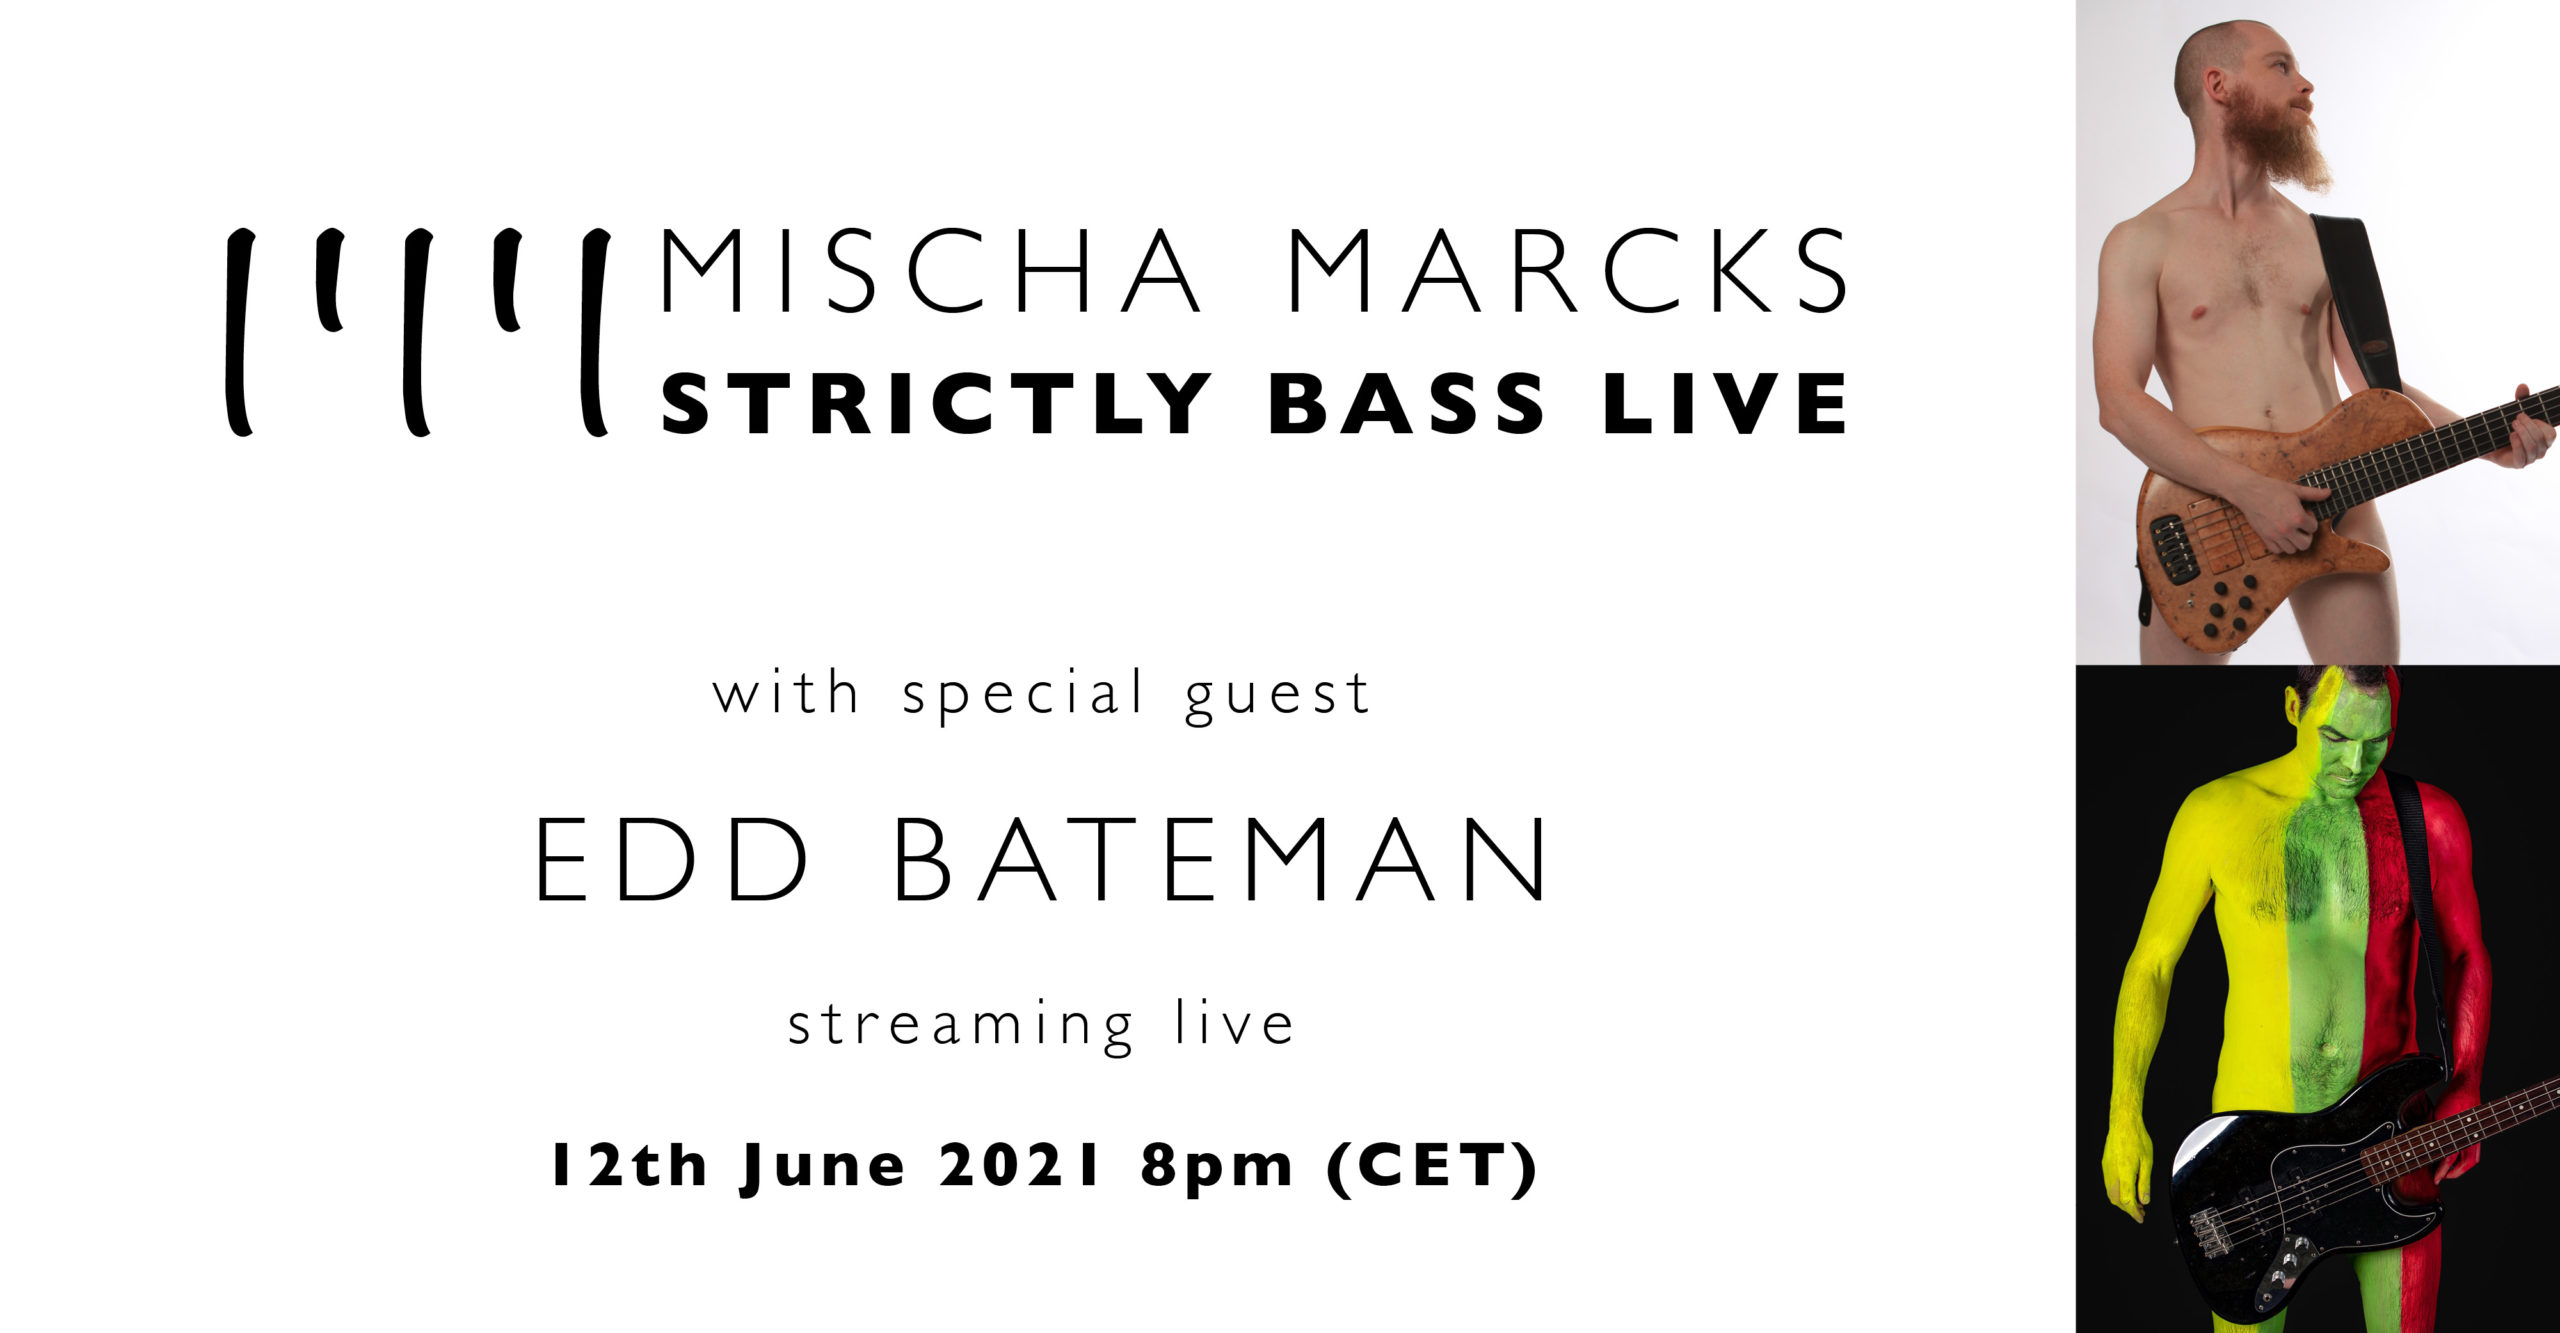 STRICTLY BASS LIVE with special guest Alex Lofoco